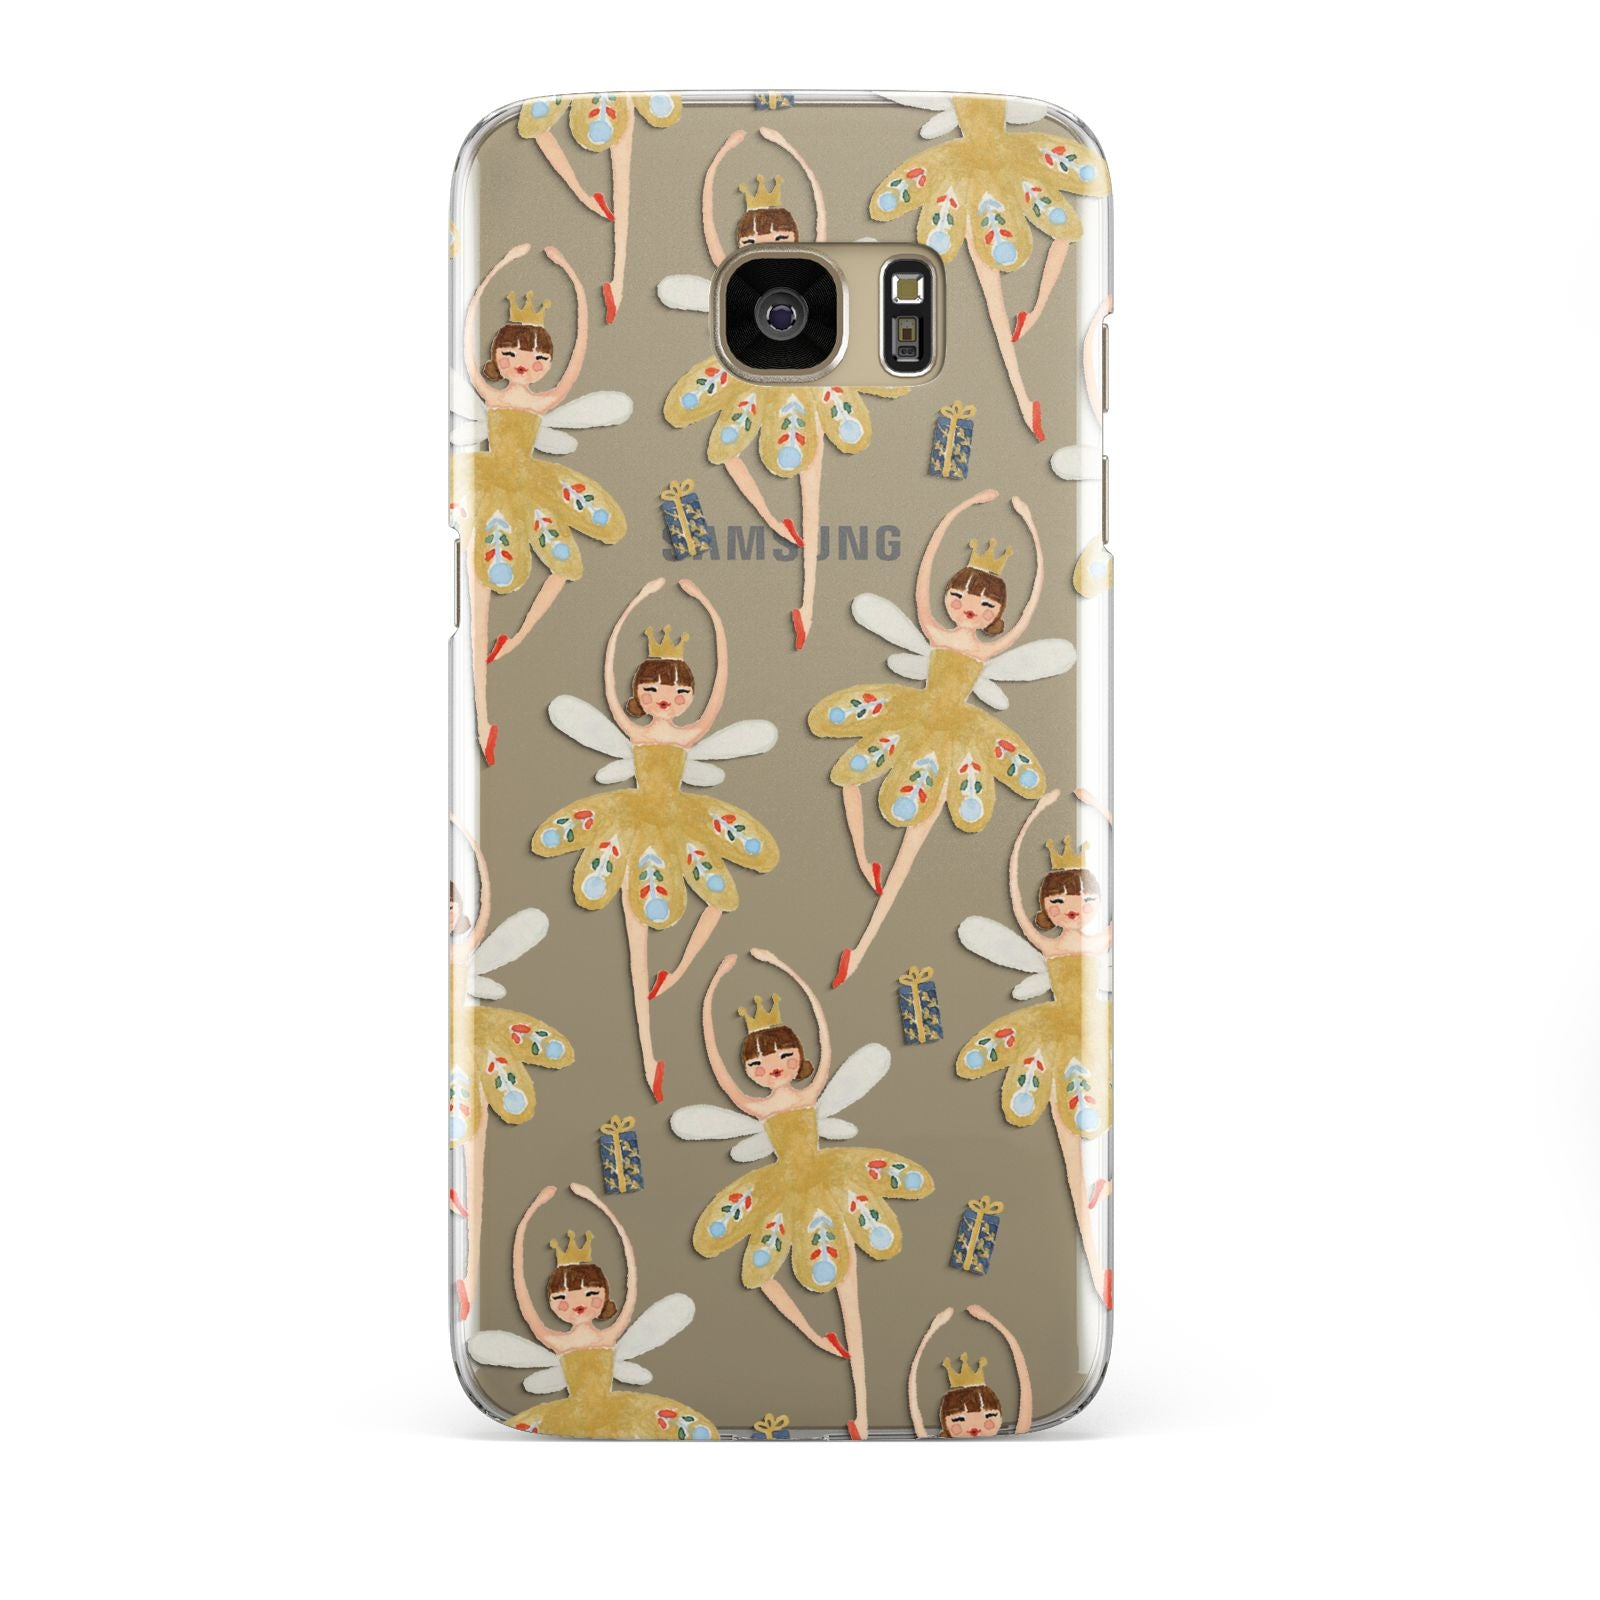 Dancing ballerina princess Samsung Galaxy S7 Edge Case